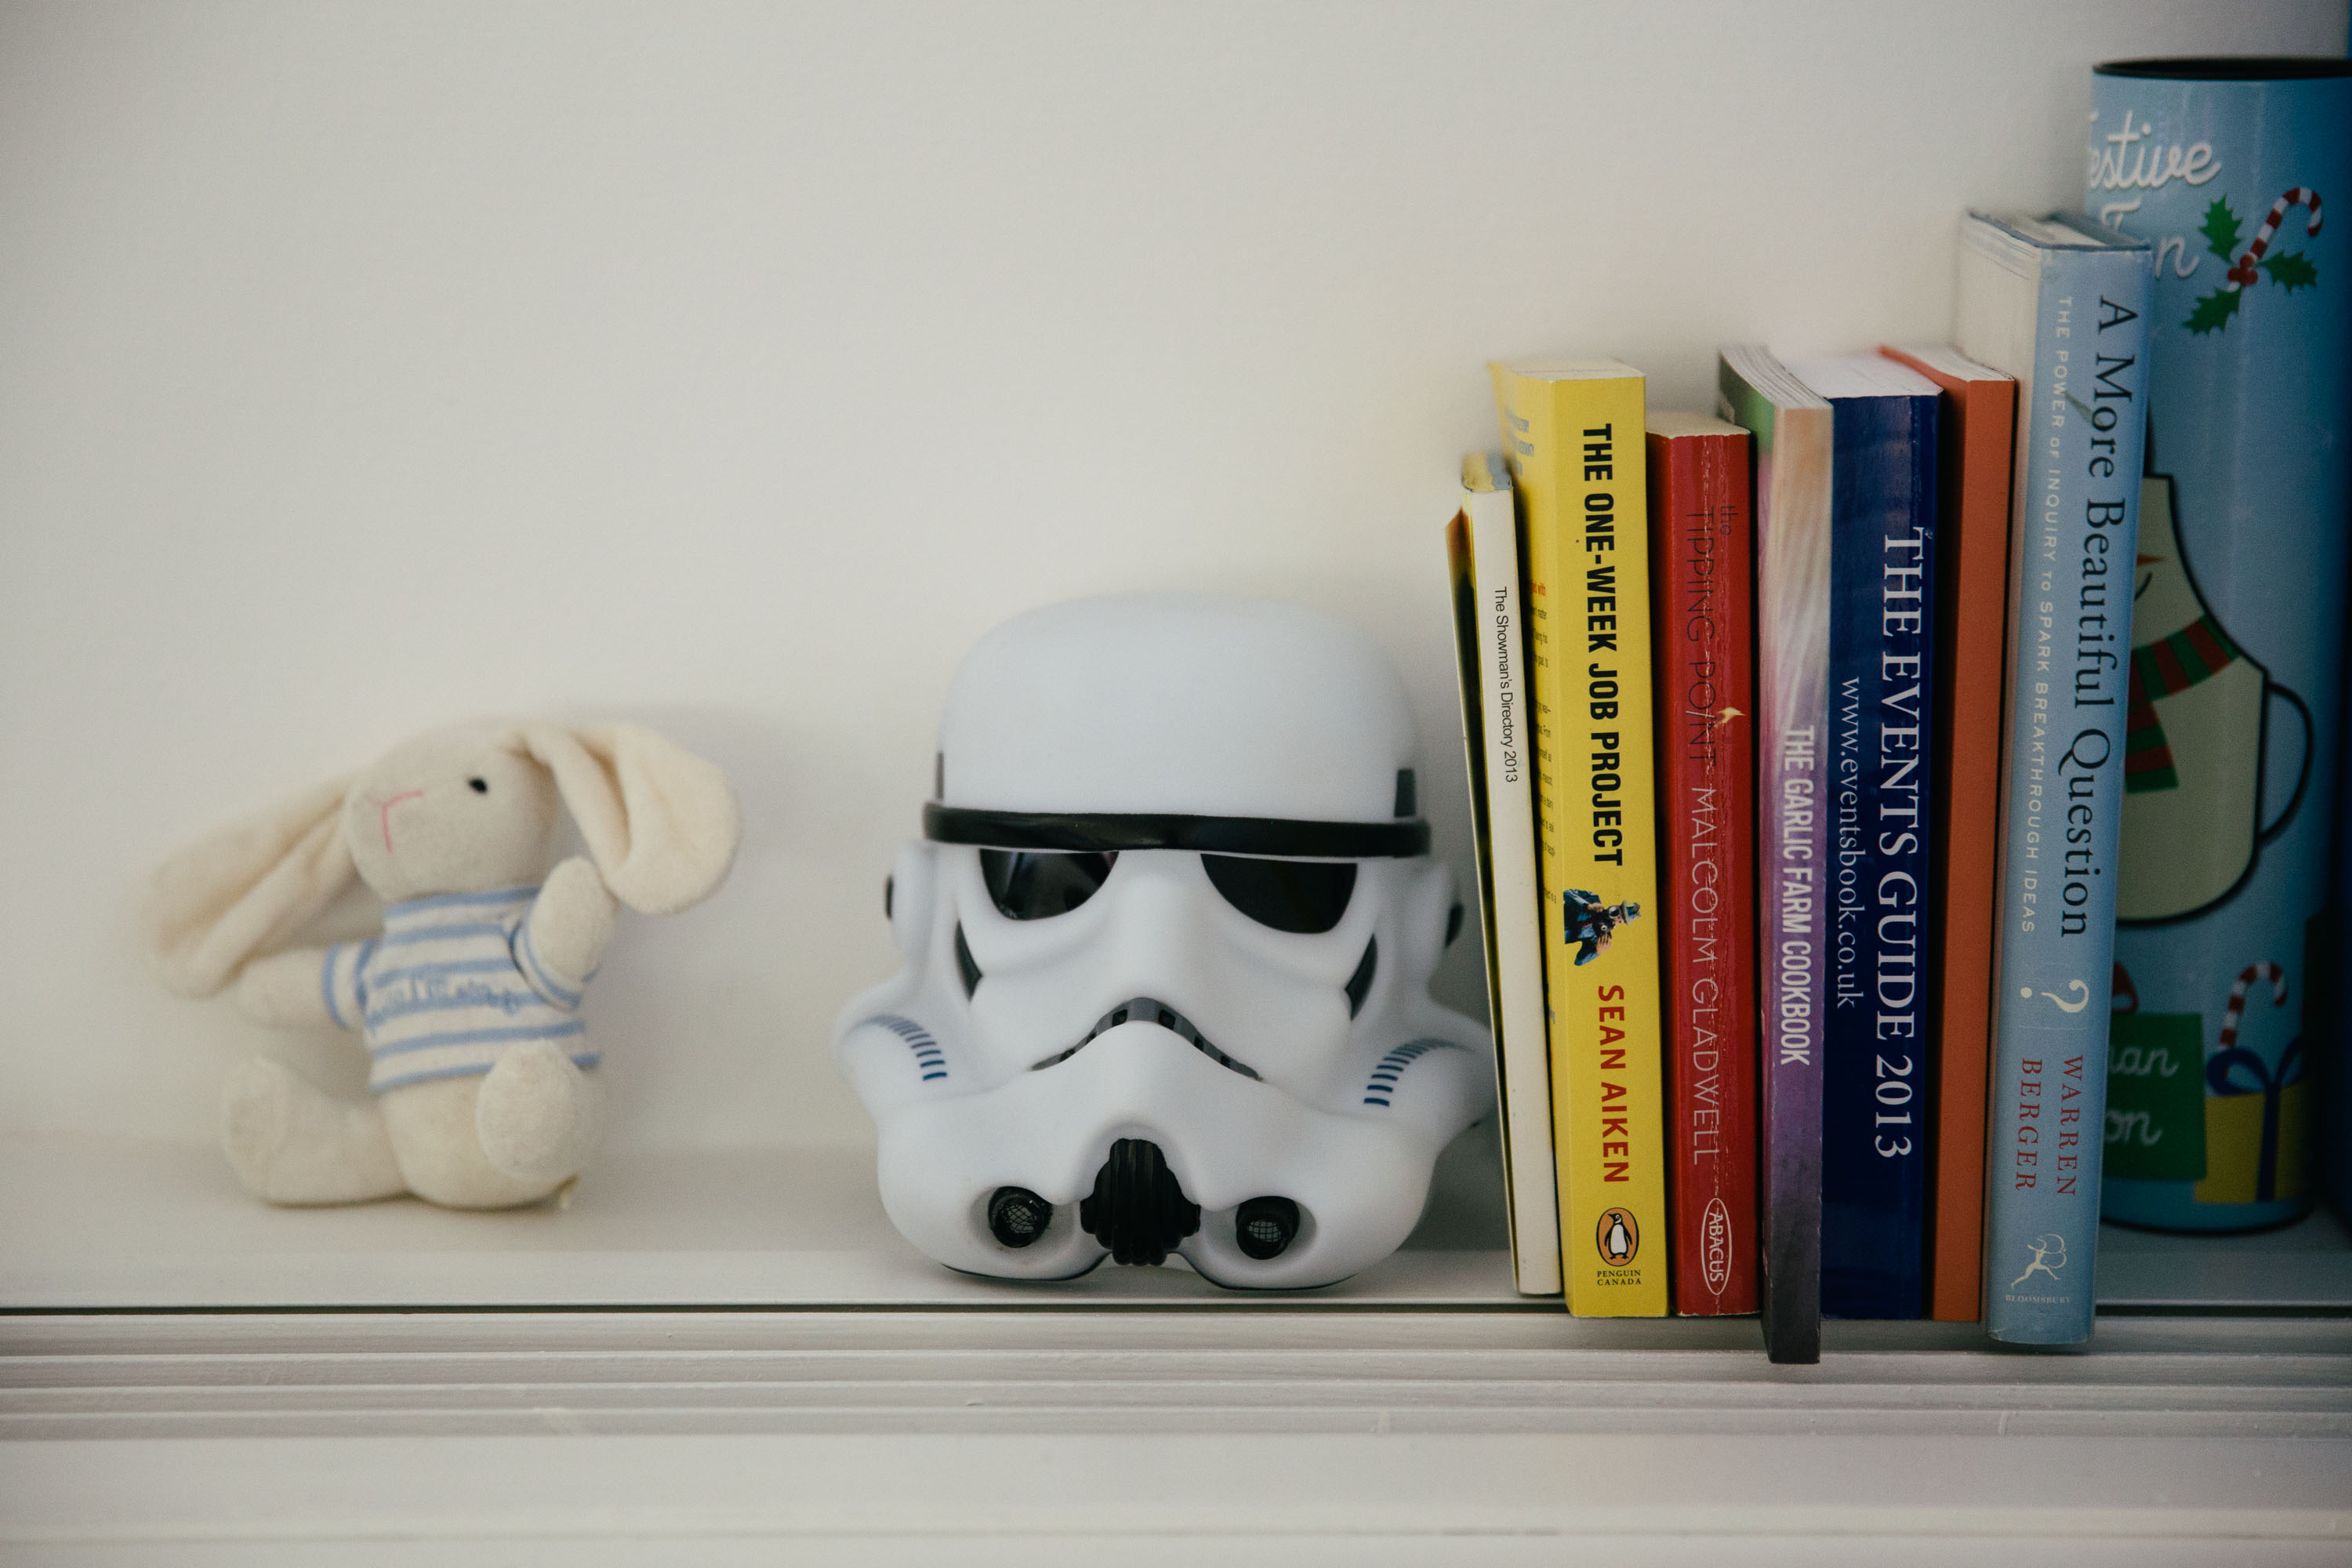 Rocket Star Wars Bookshelf